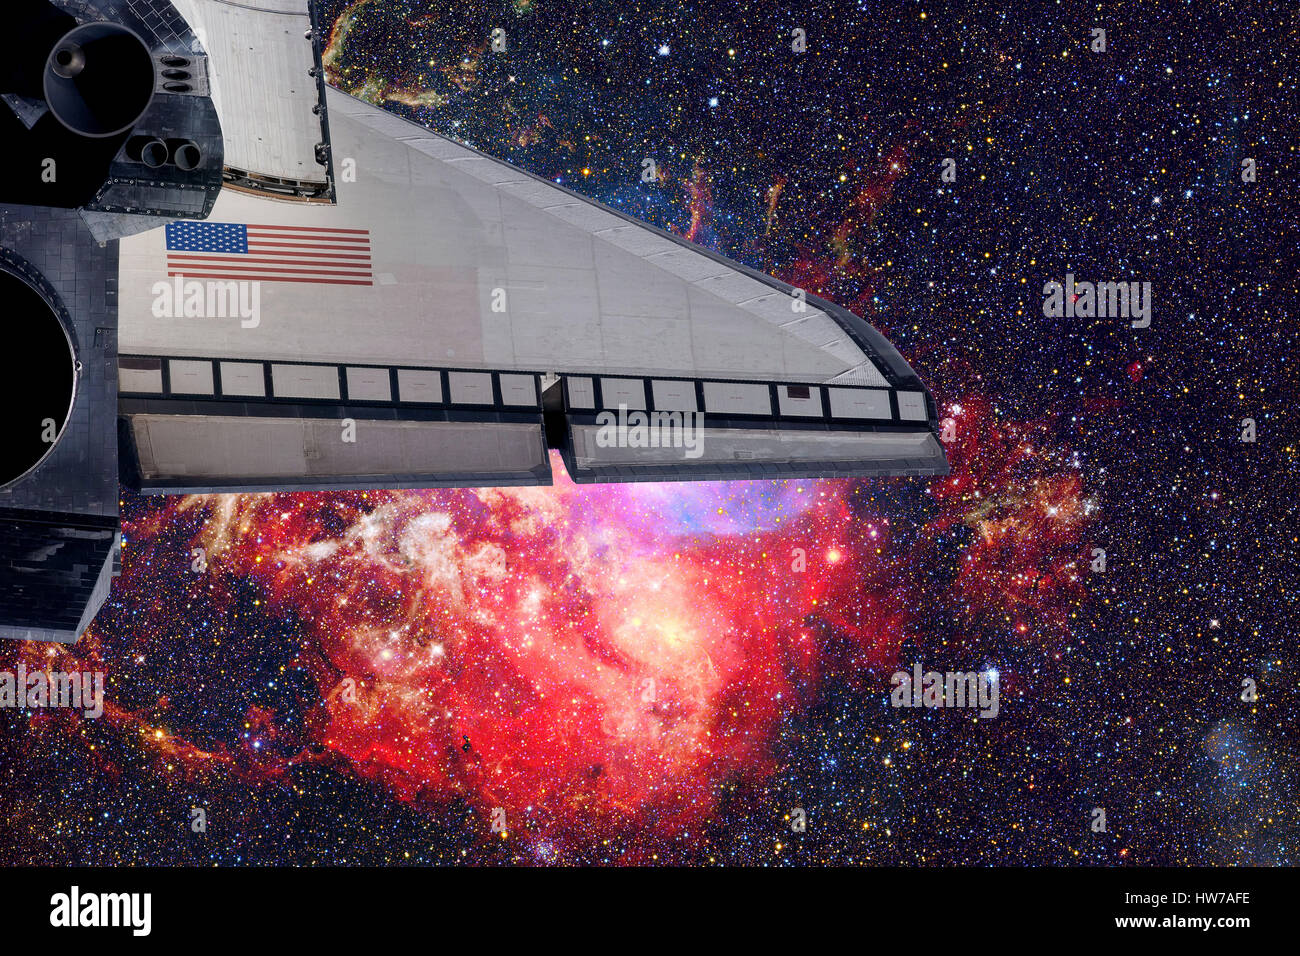 Space shuttle taking off on a mission. Elements of this image furnished by NASA - Stock Image